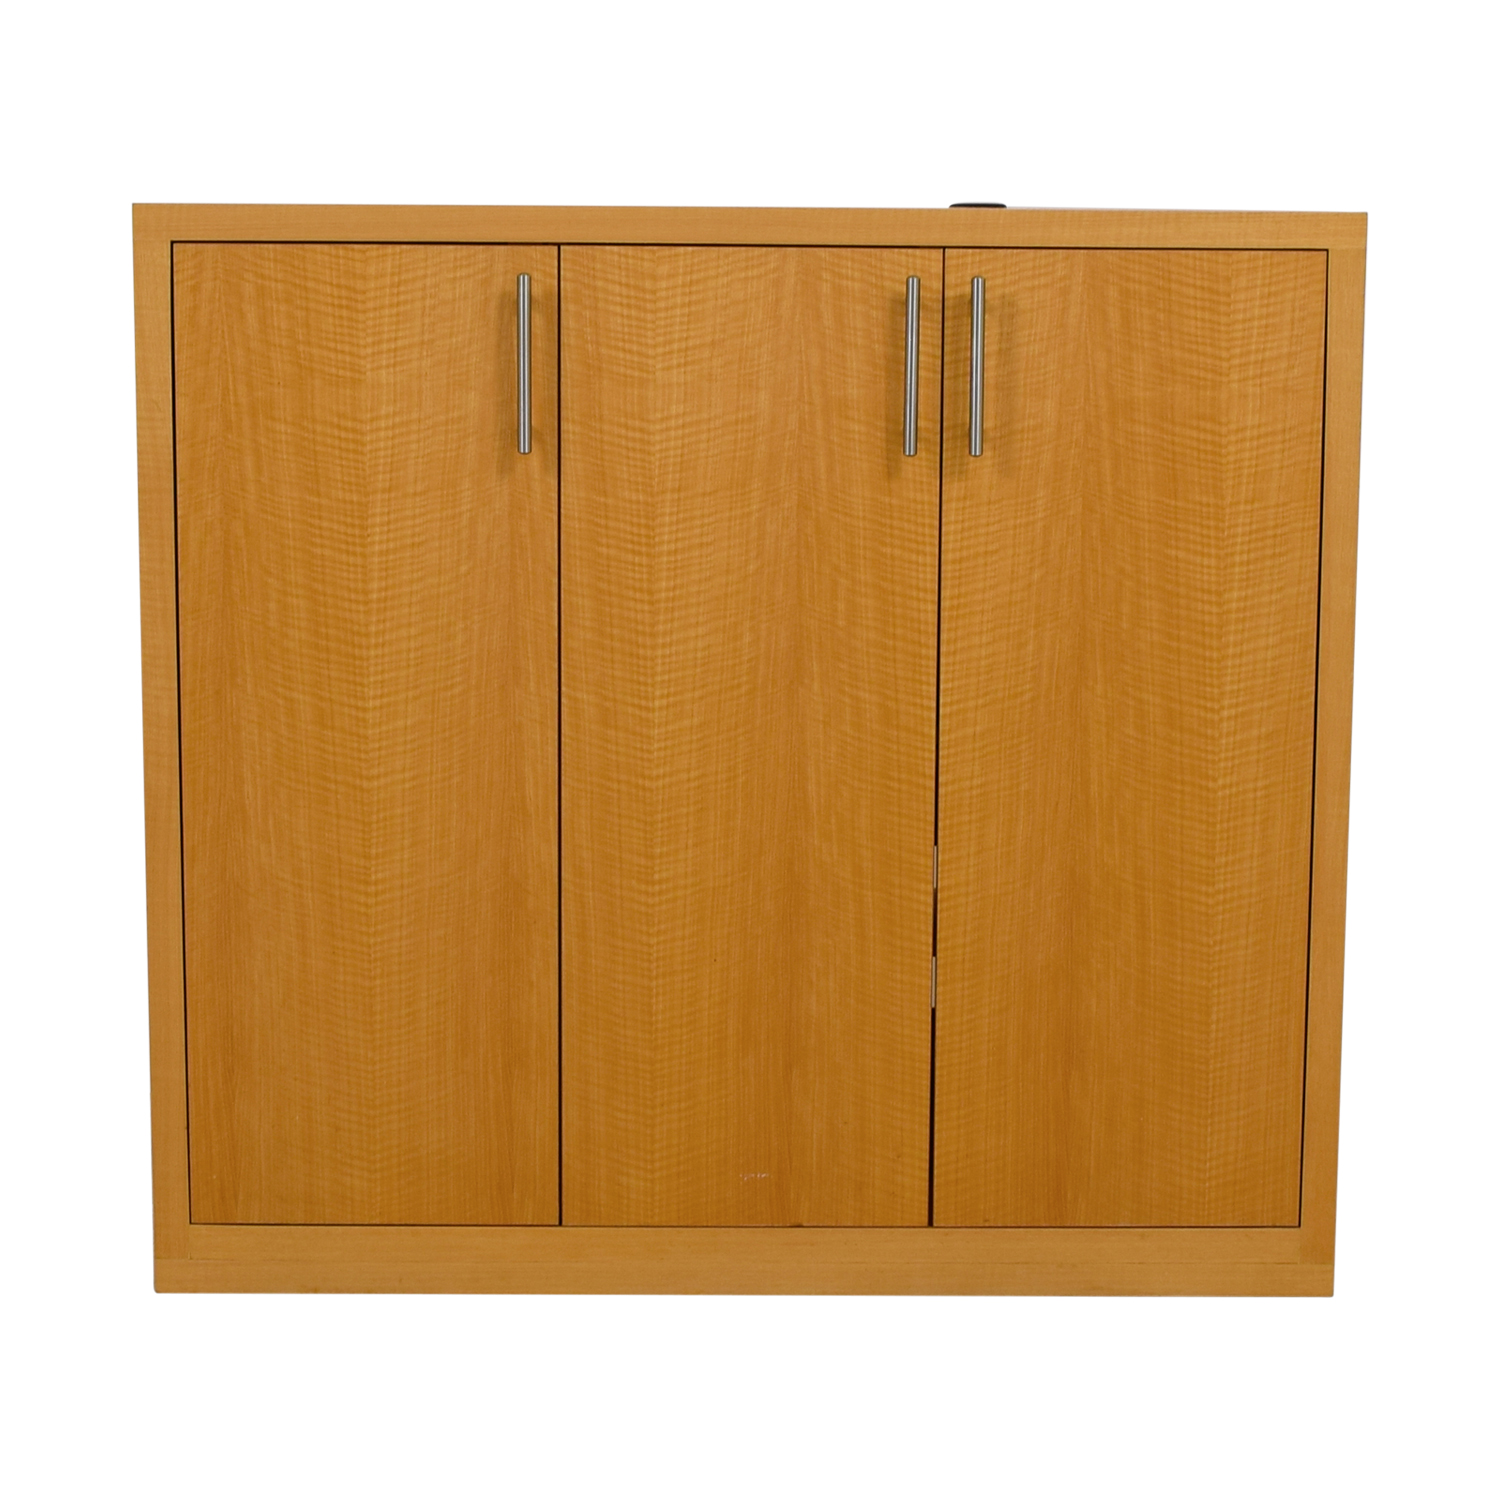 MDC International MDC International Rapsody Wood Cabinet discount